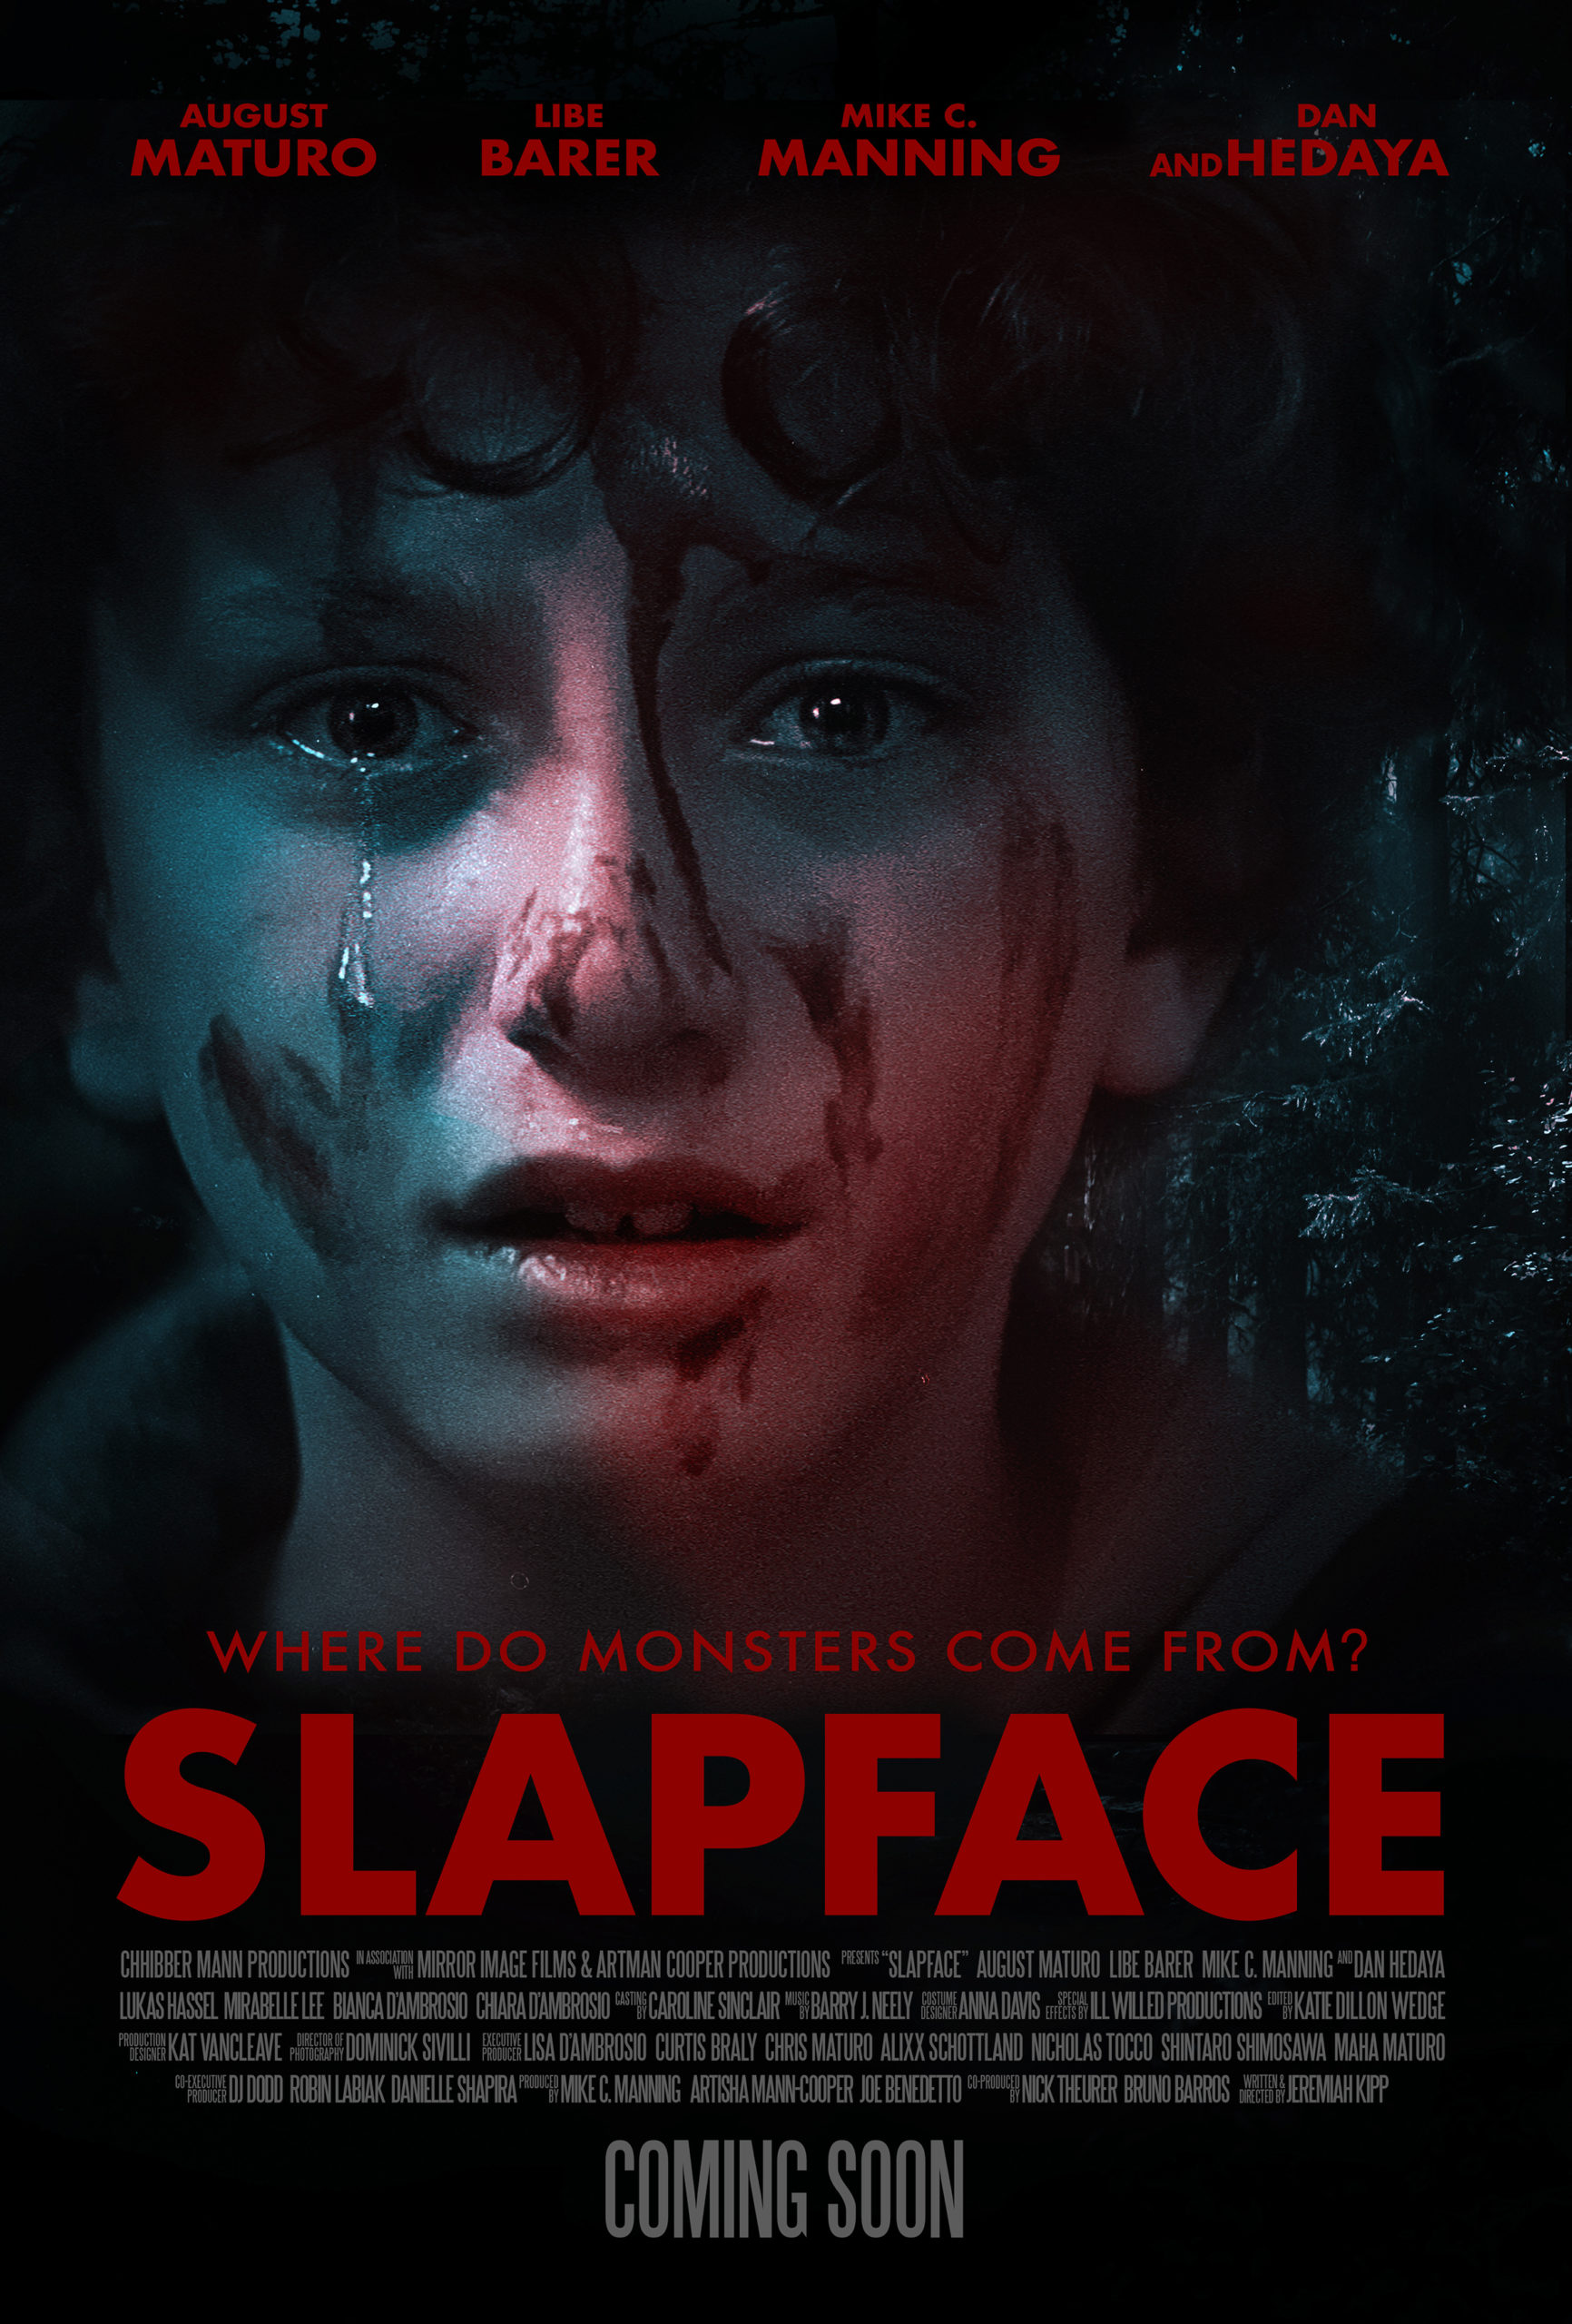 Slapface Movie Poster Design